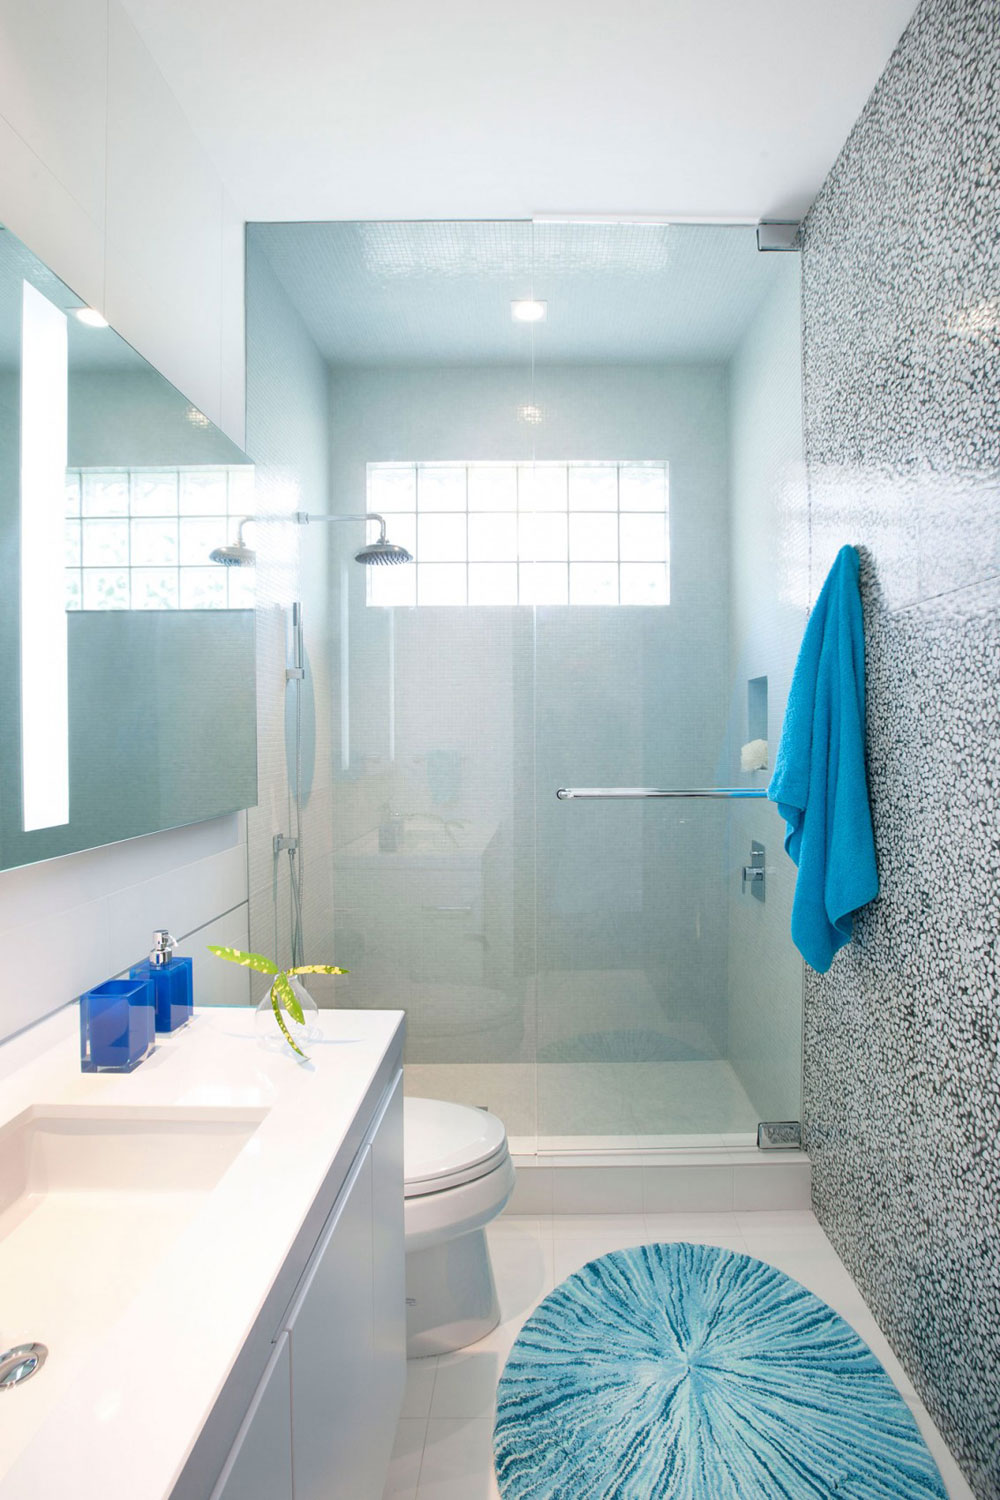 How to decorate a small bathroom and still save space 7 How to decorate a small bathroom and still save space